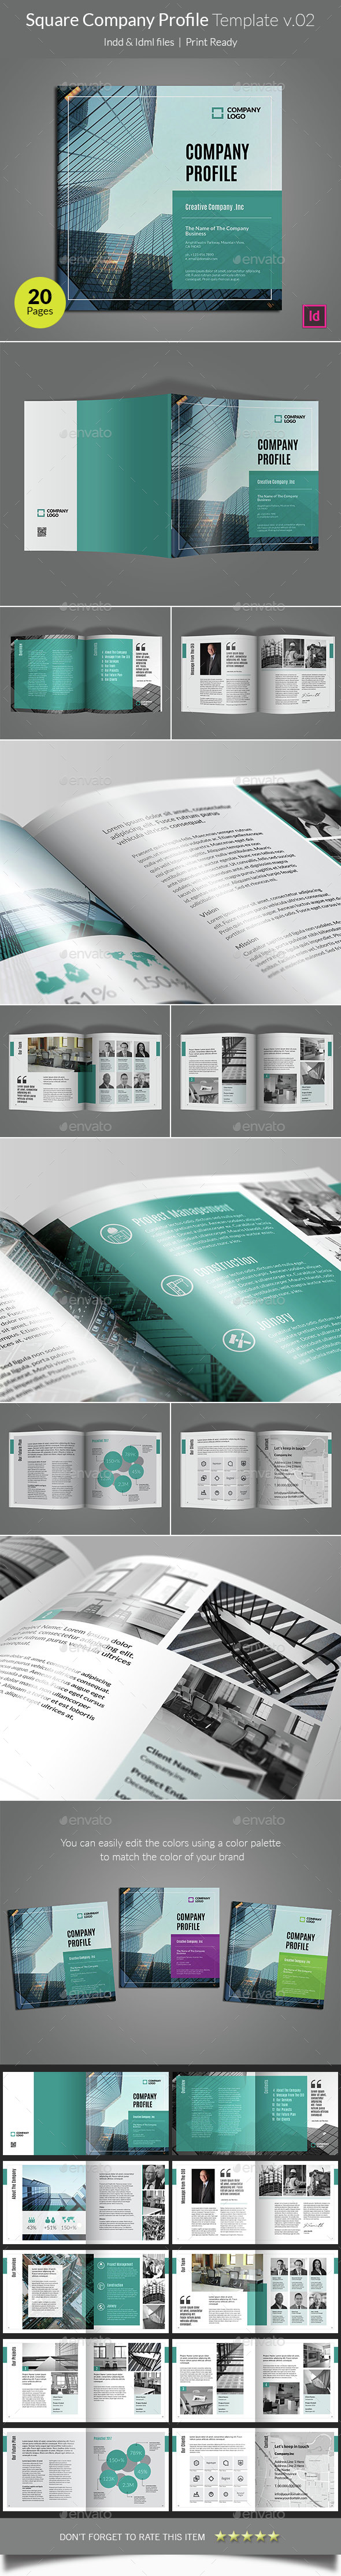 Company Profile Template V02 By Heriwibowo Graphicriver